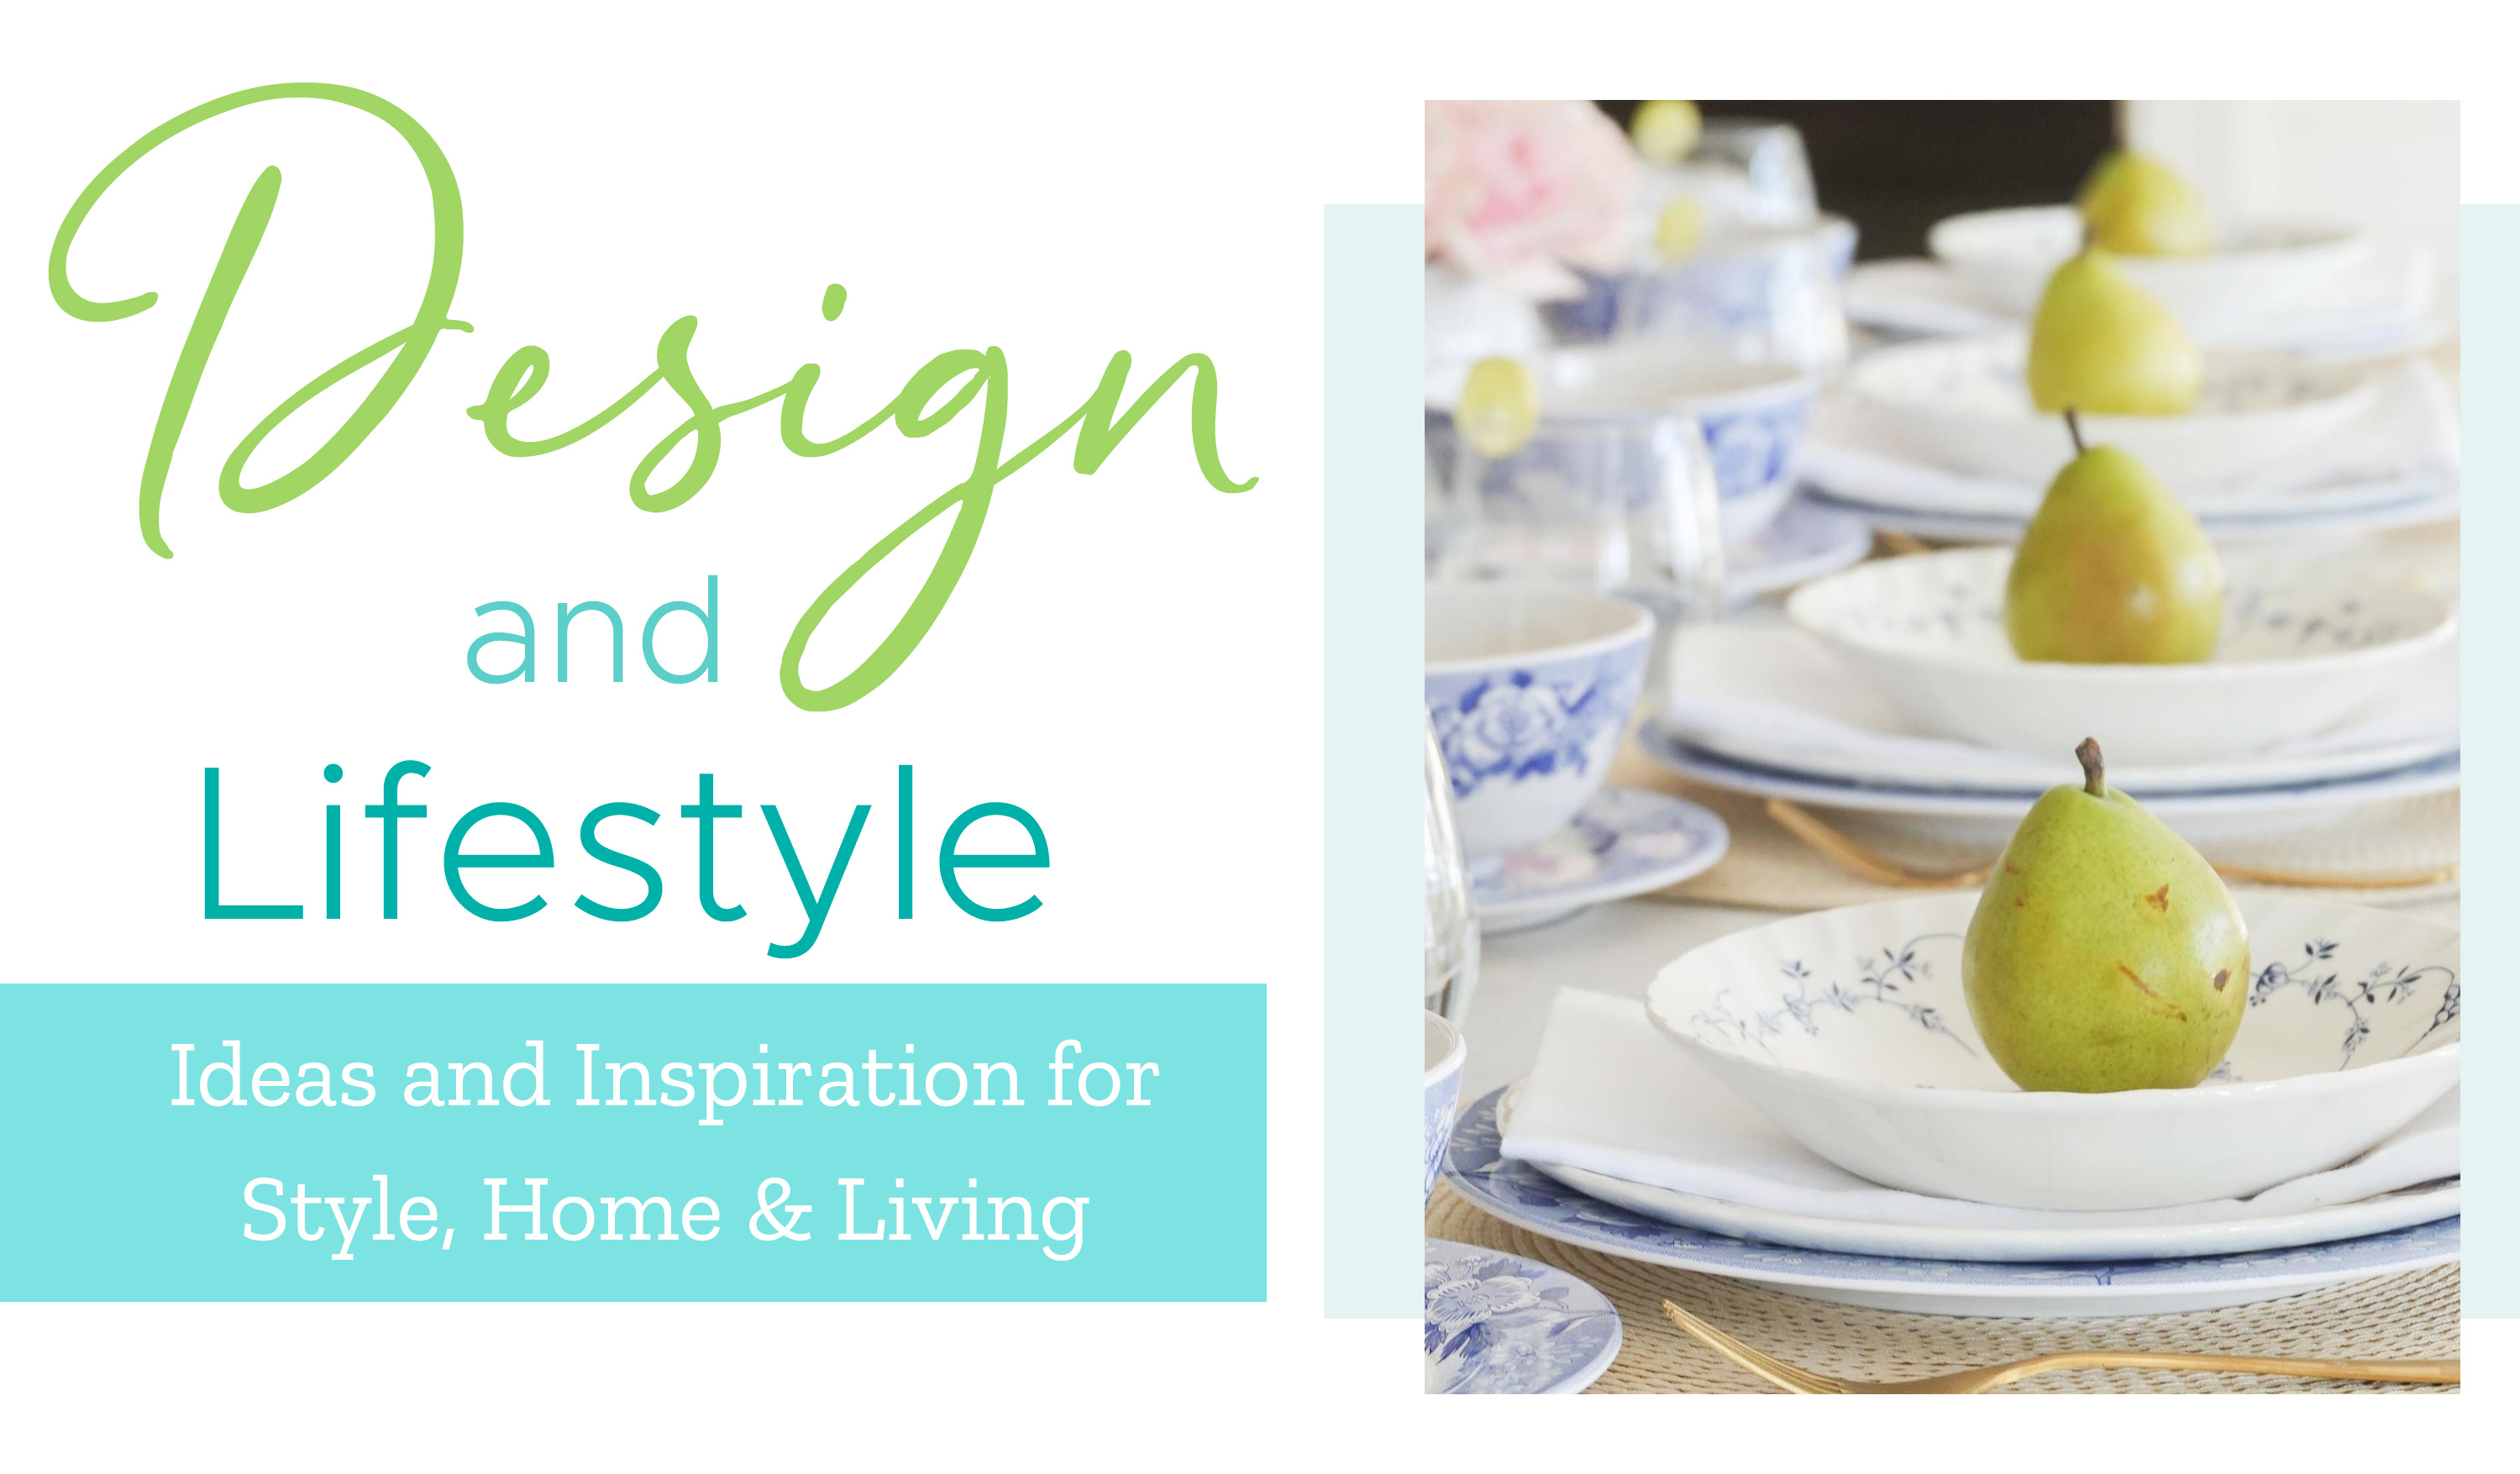 Design and Lifestyle - Ideas and Inspiration for Style, Home & Living